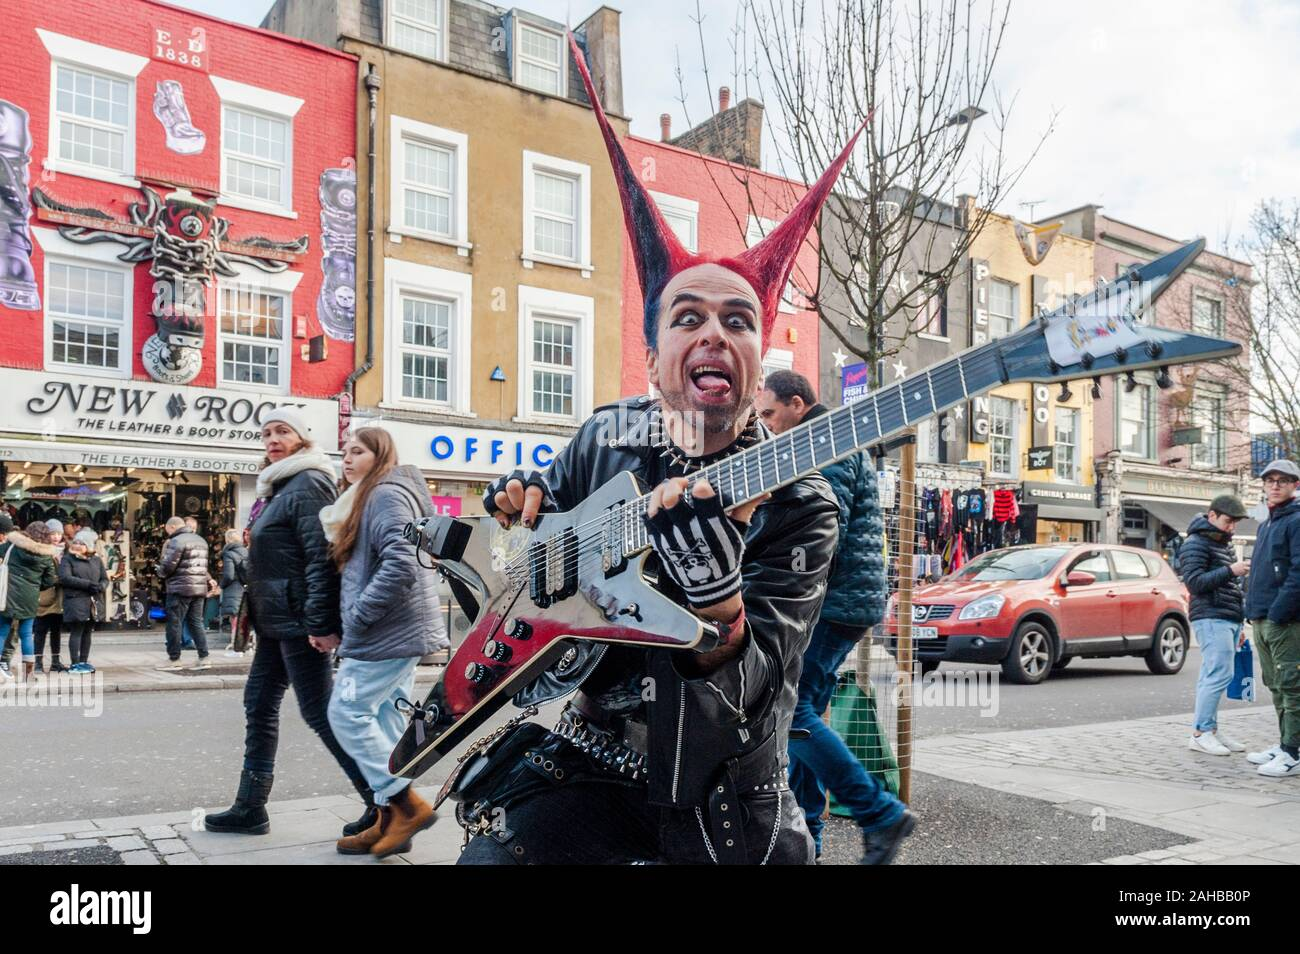 man-dressed-in-punk-rocker-clothes-with-spiked-hair-and-a-guitar-poses-for-tourist-pictures-on-camden-high-street-camden-london-uk-2AHBB0P.jpg